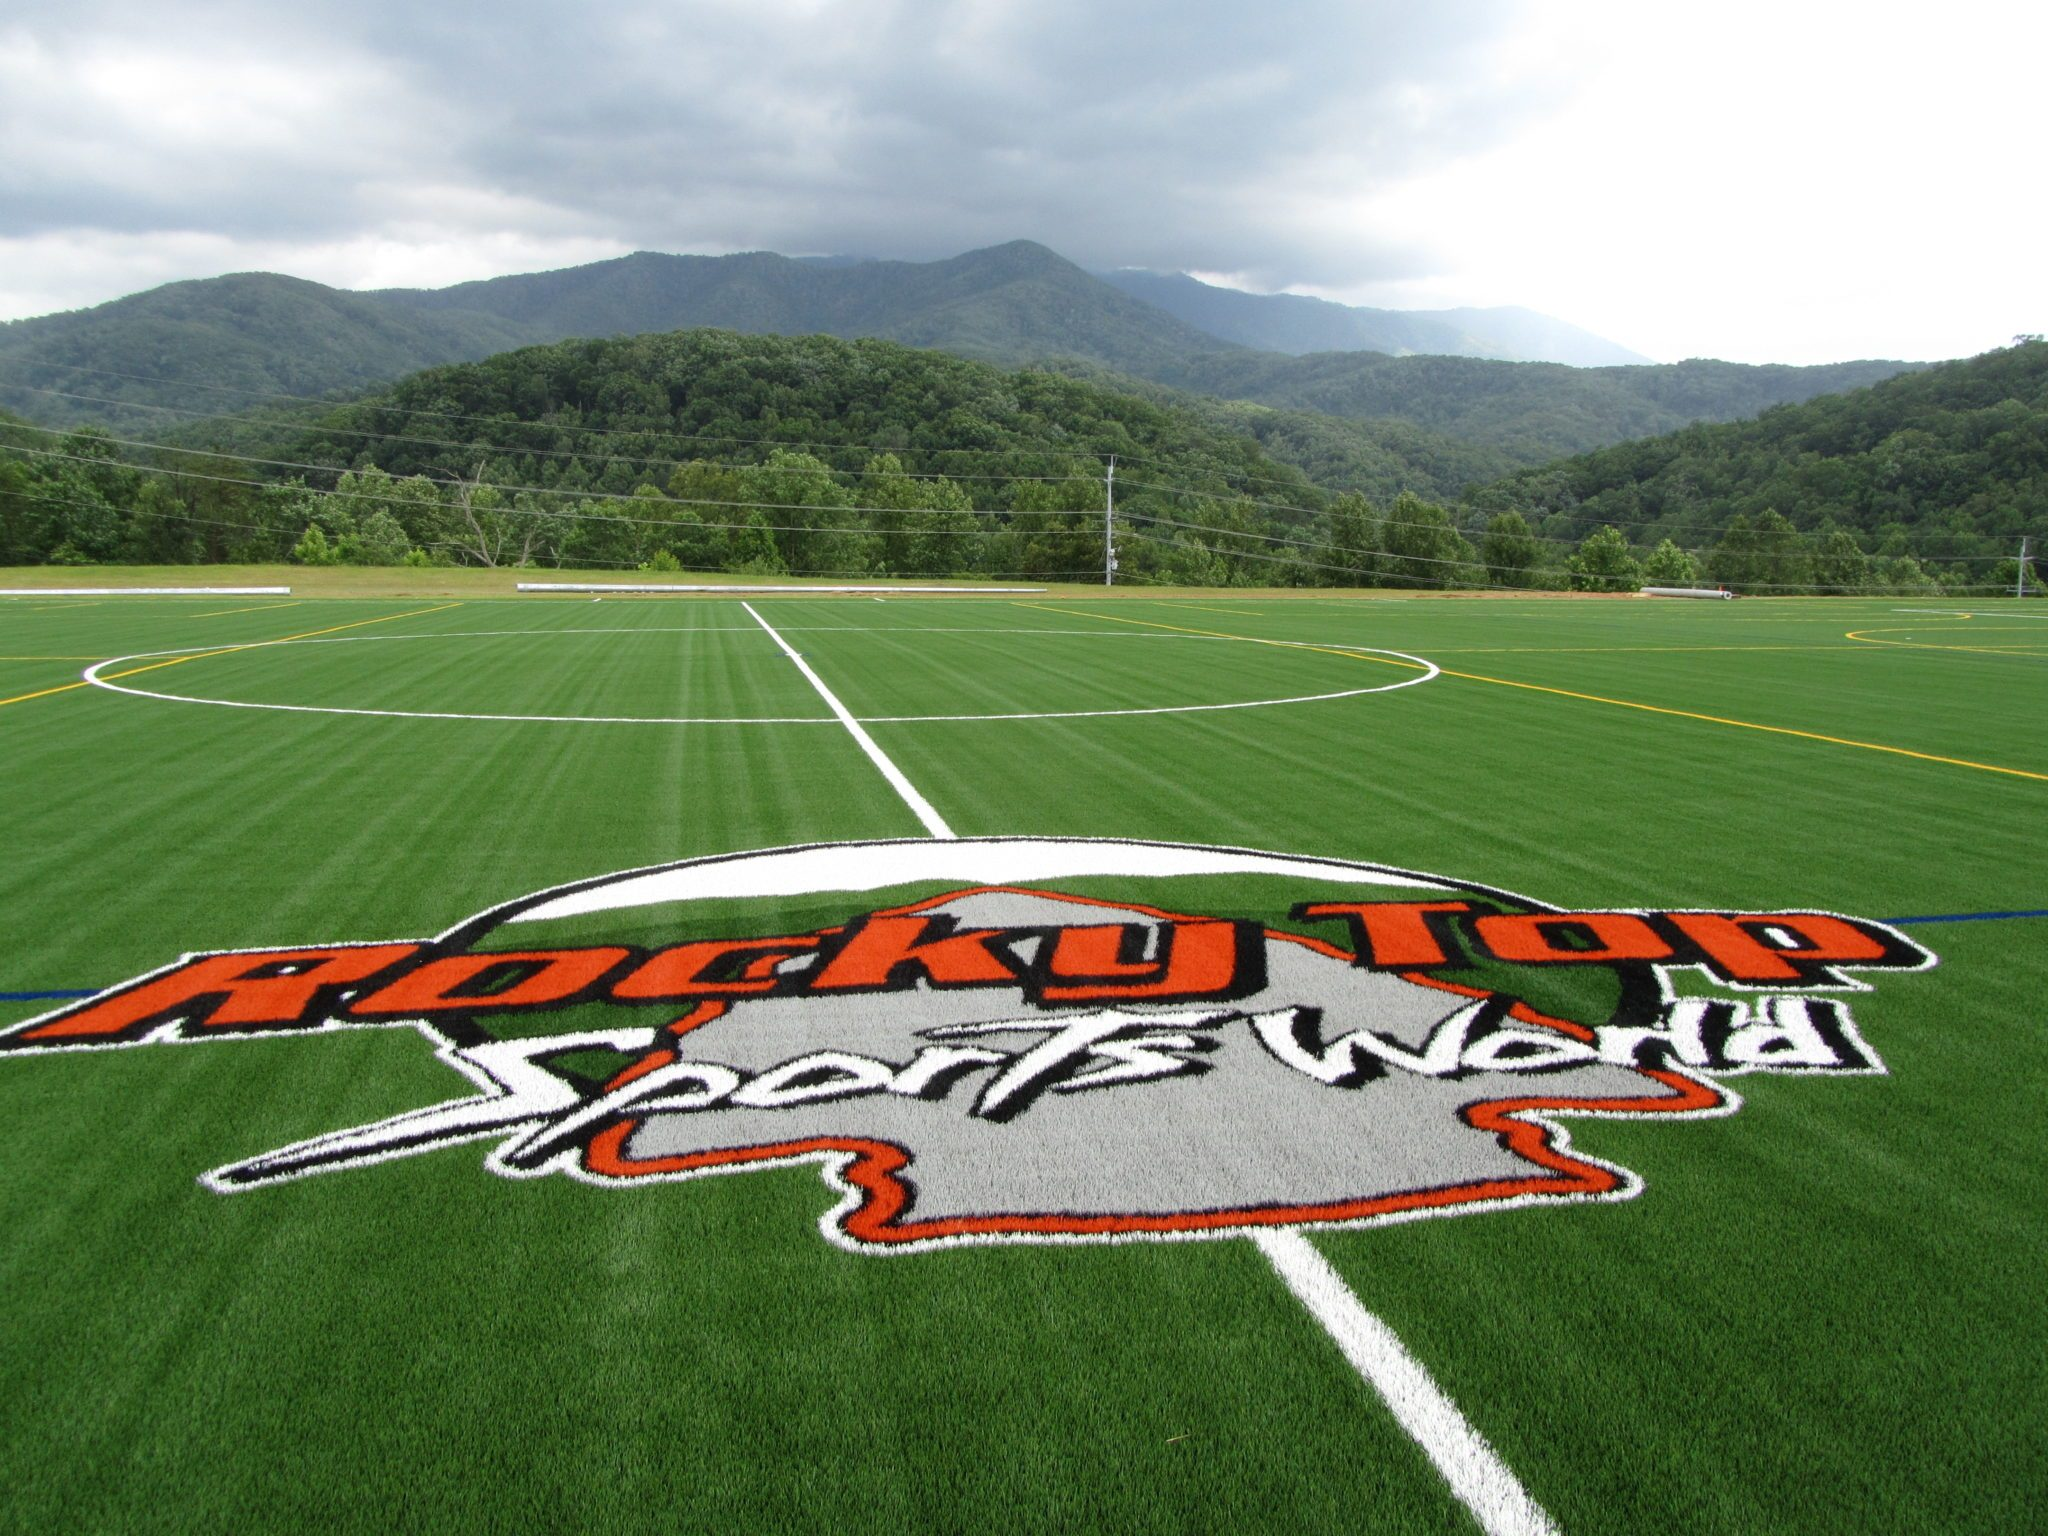 Rocky Top sports complex soccer field